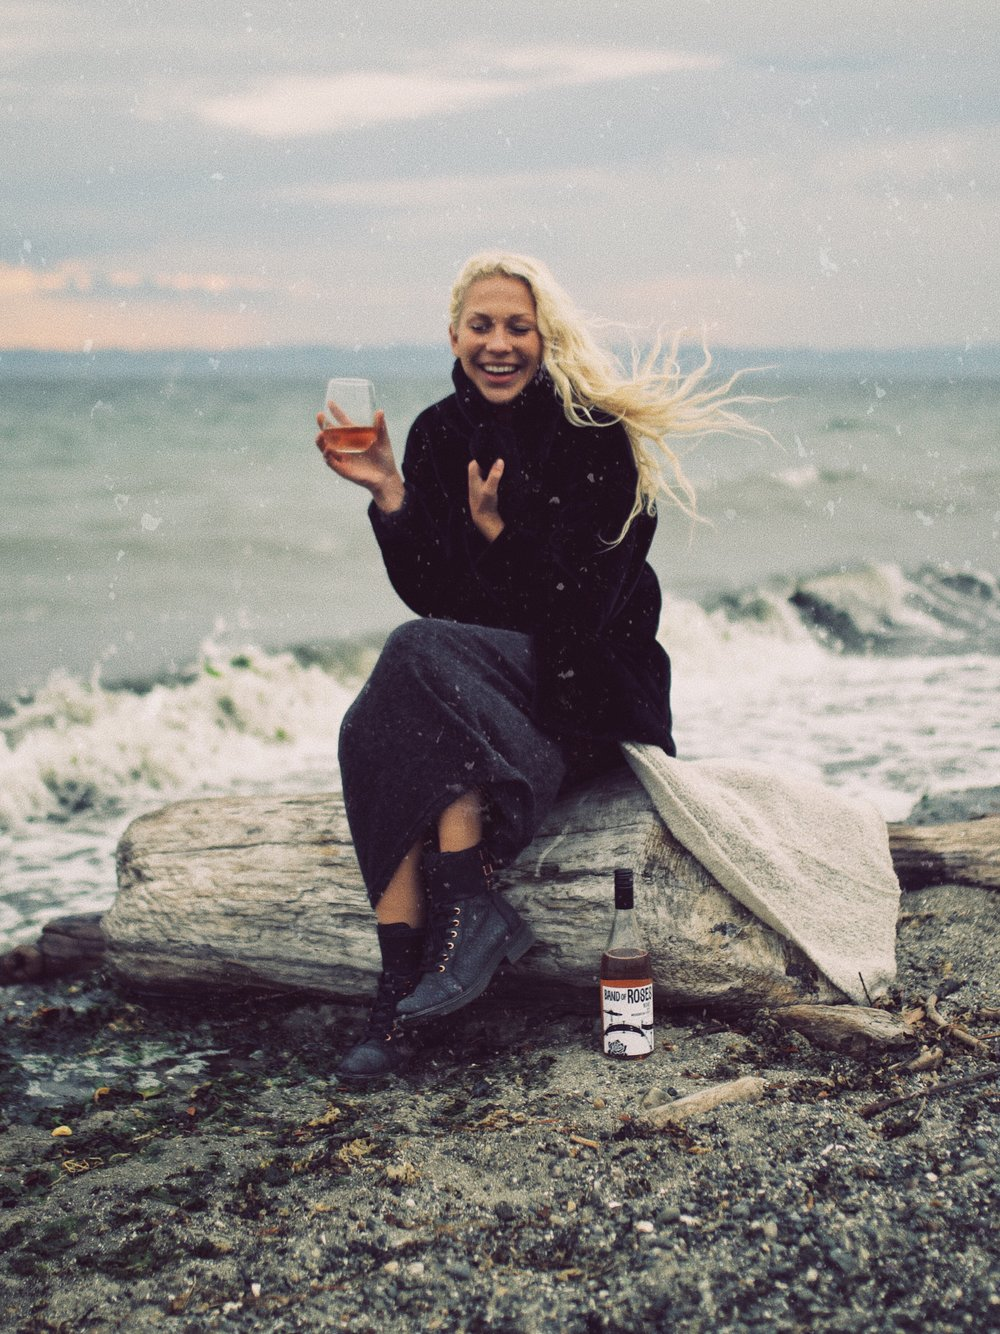 Charles Smith Wines - Had the opportunity to capture this awesome Rose on the shore of Discovery Park for a social media campaign with Charles Smith wines. My friend Cato who you see in these photographs I feel really brought the feel of this wine to life!